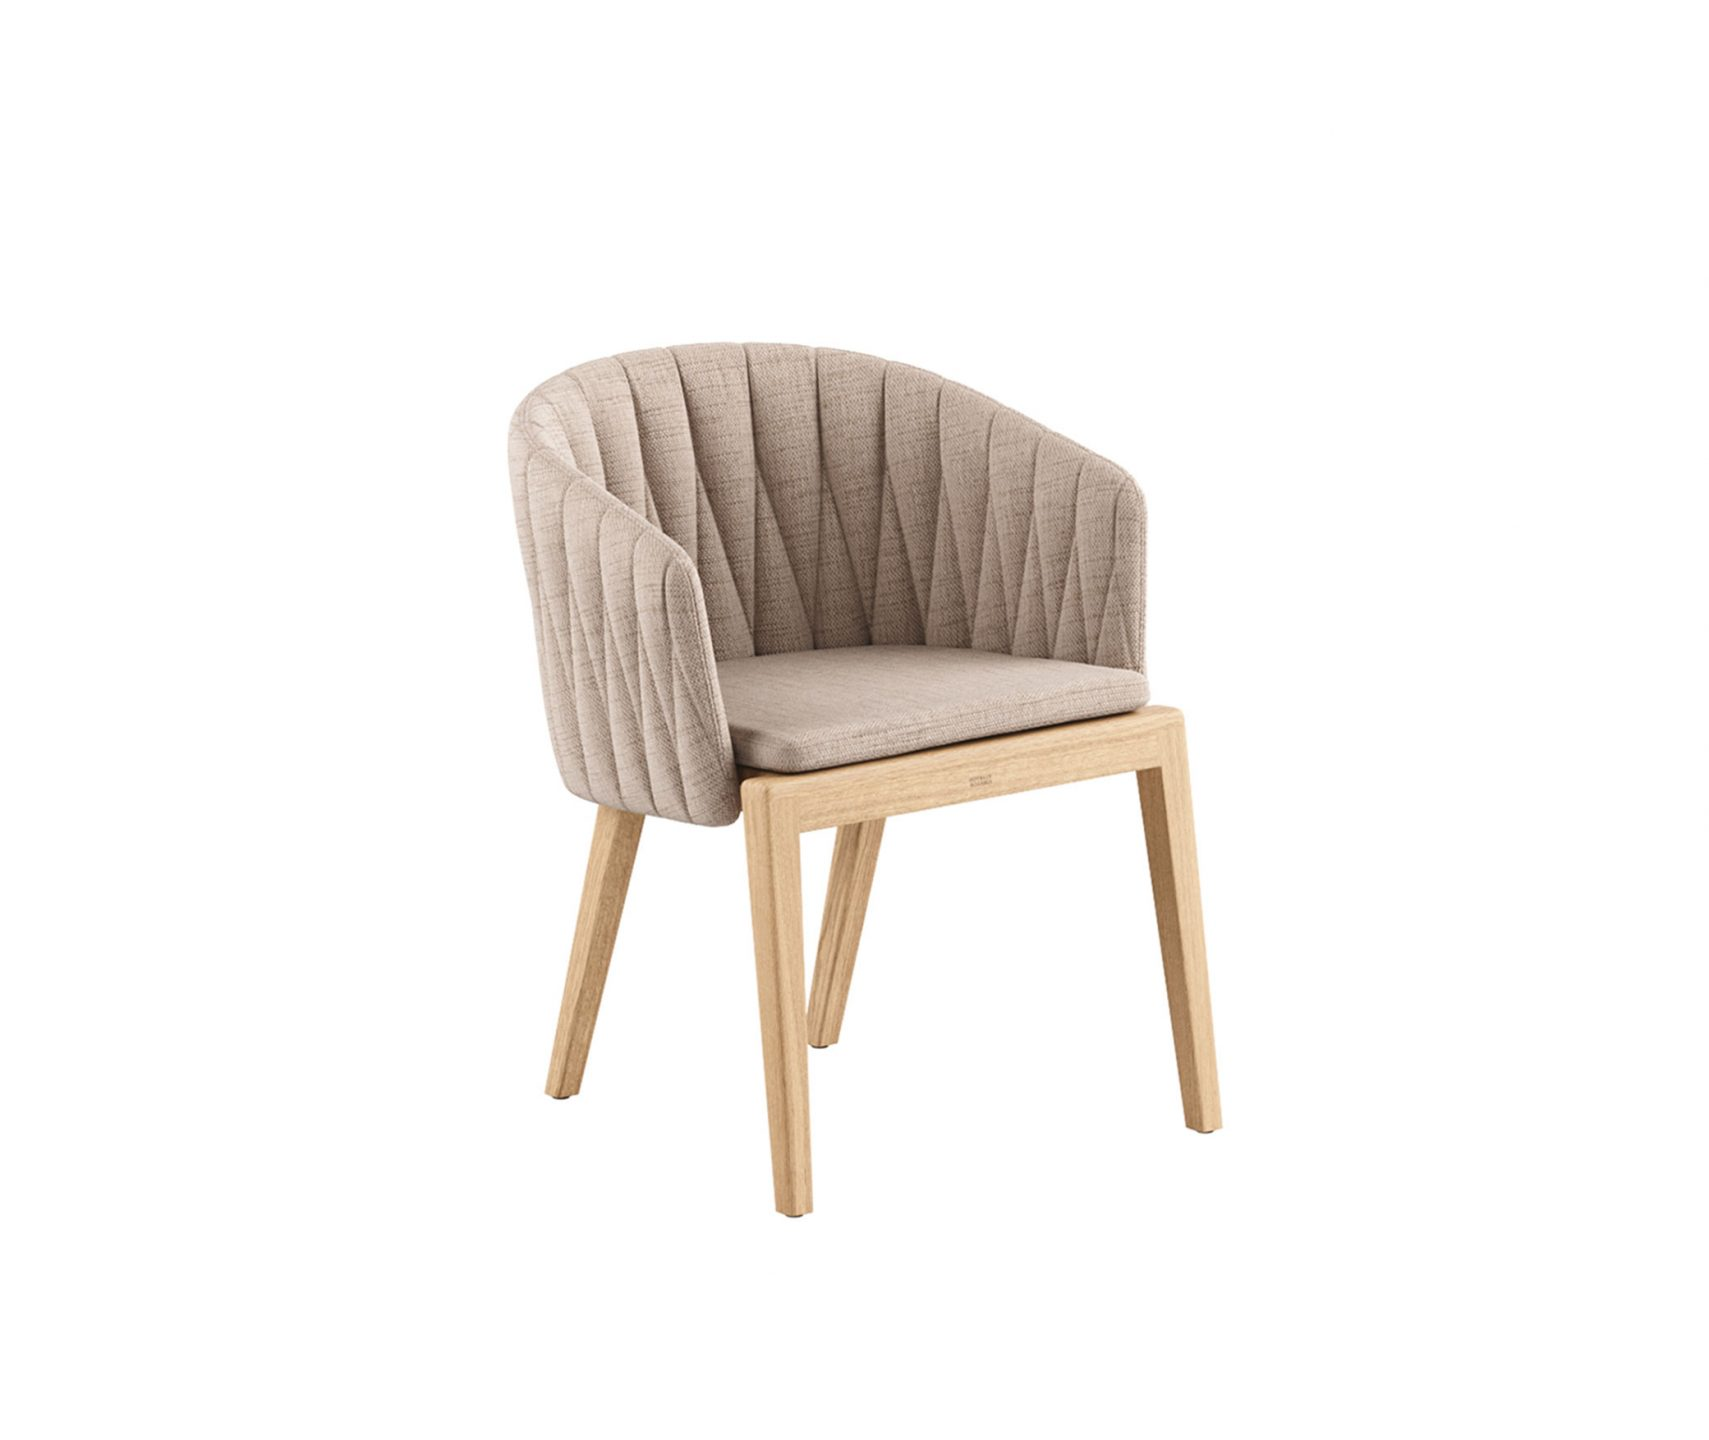 Royal-Botania_Calypso-Chair-Upholstered-Back_int_products